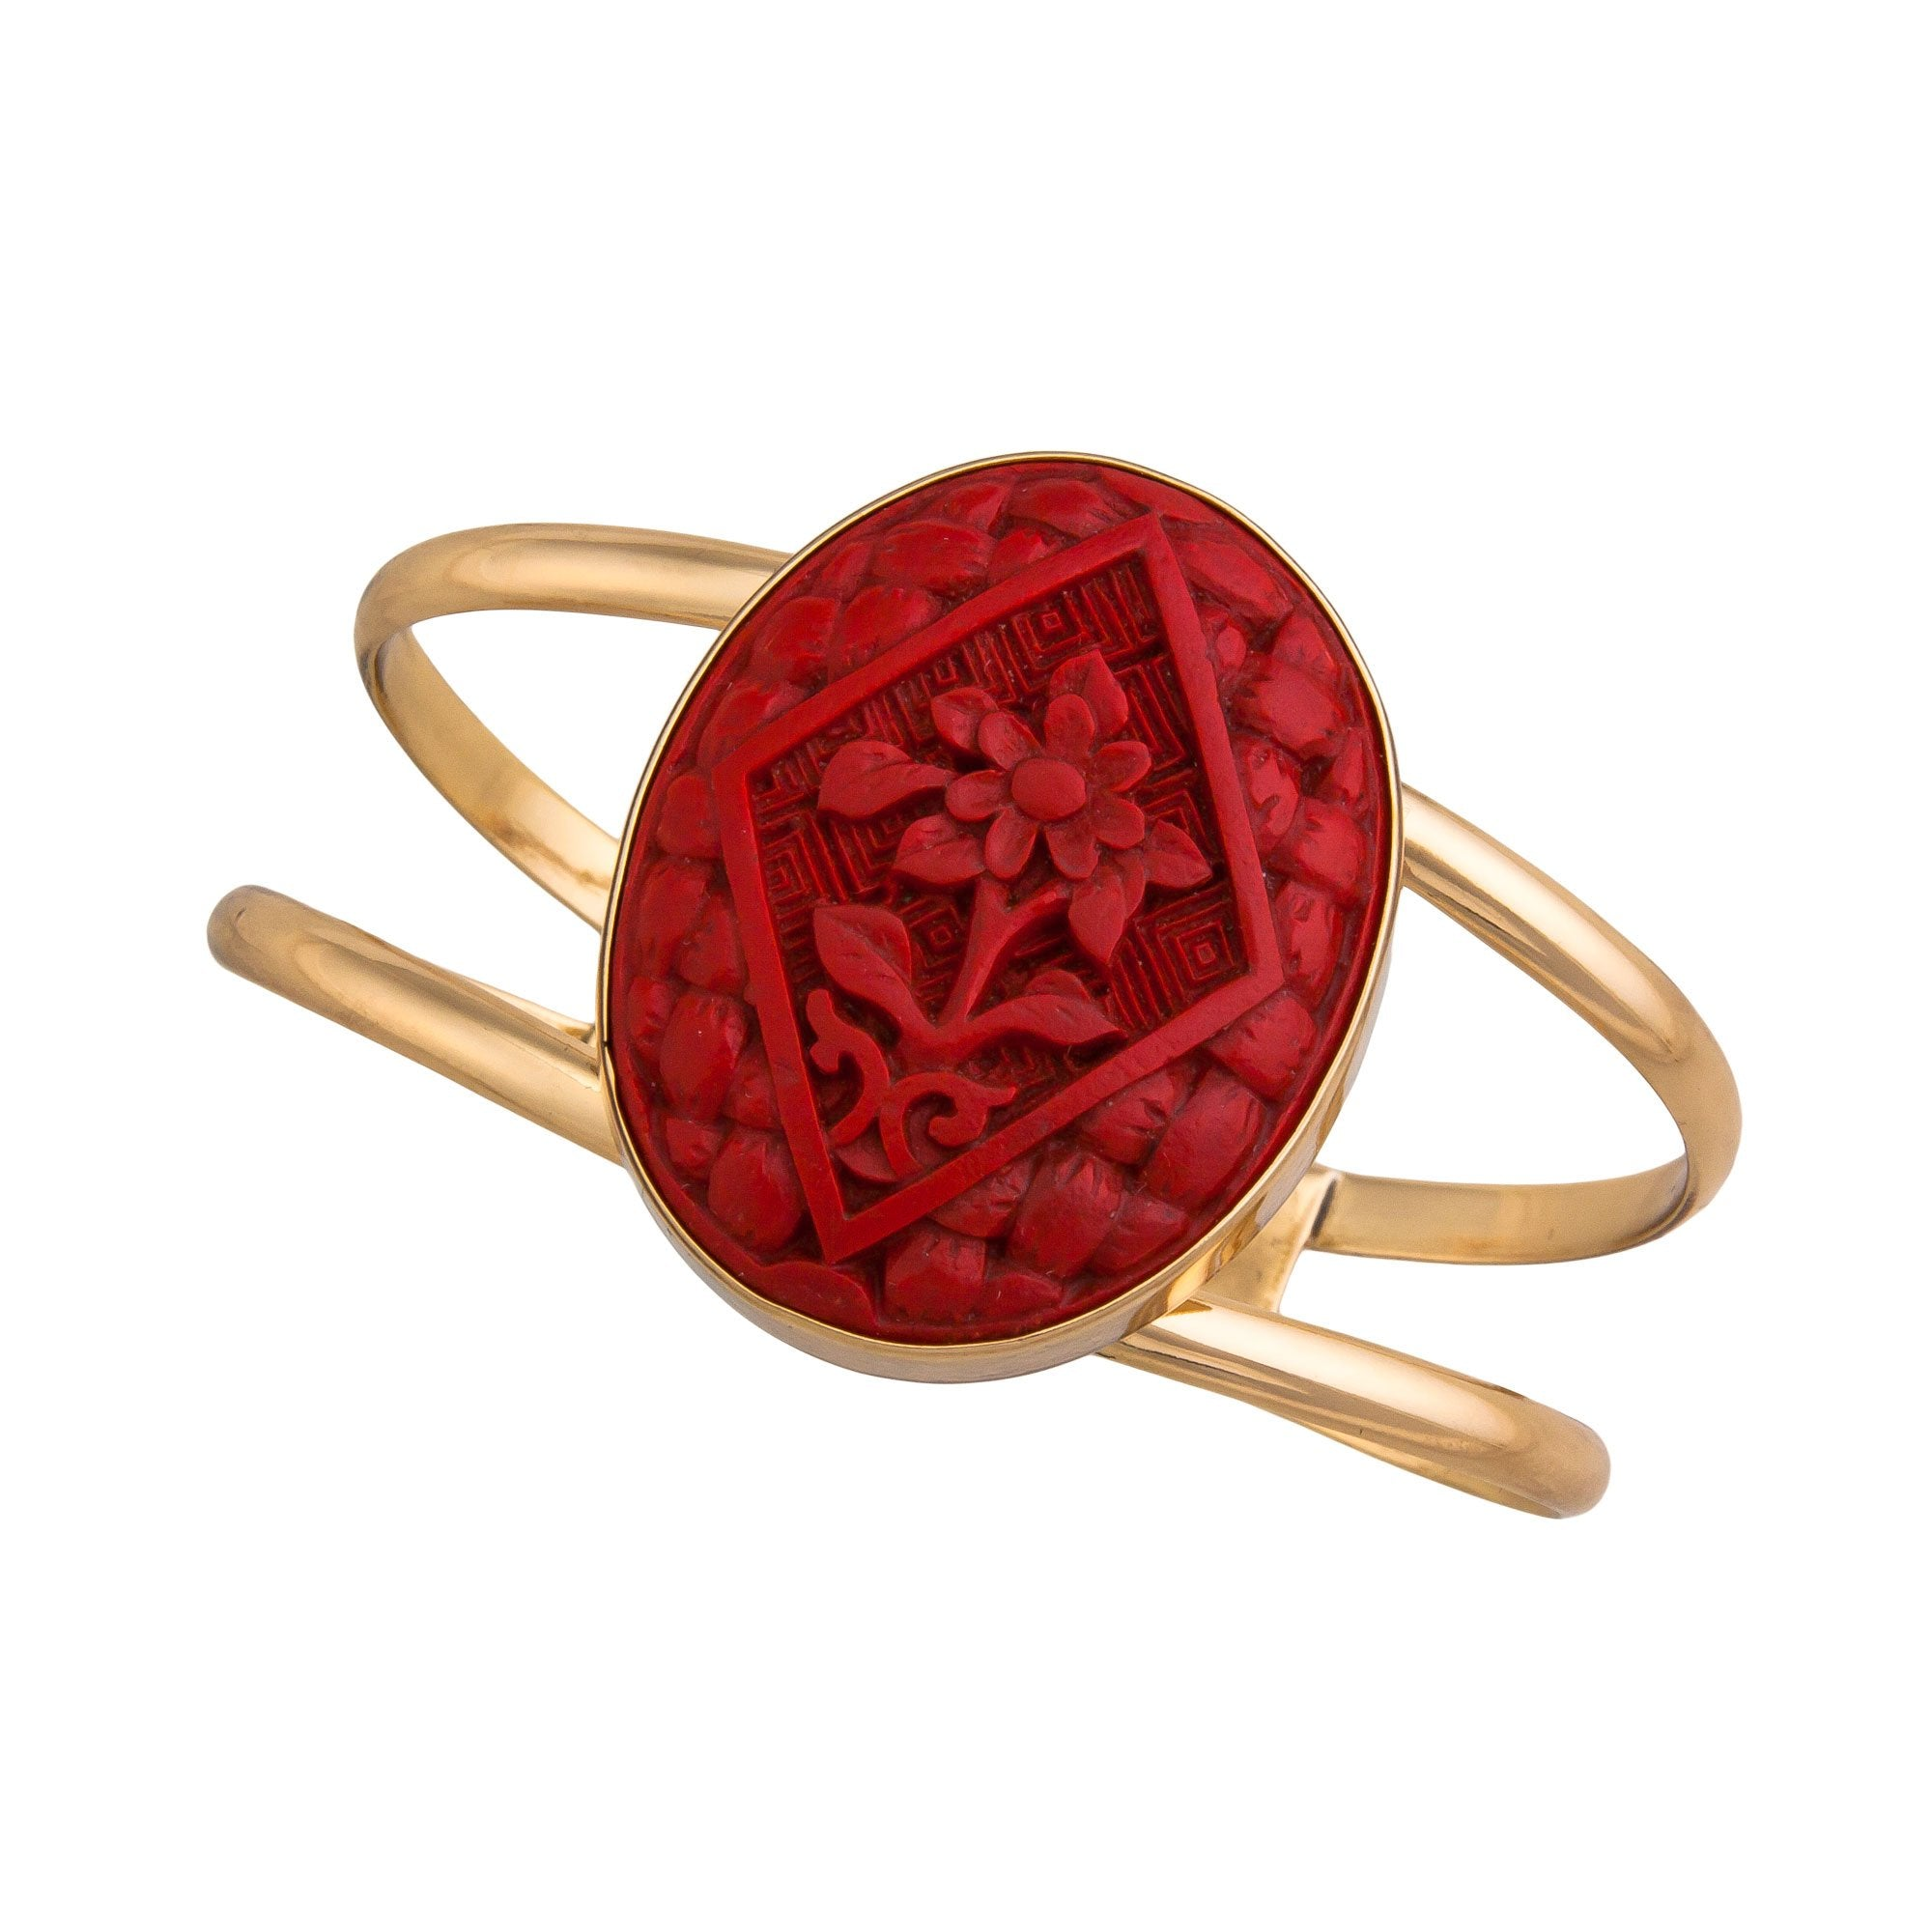 Alchemia Cinnabar Flower Double Band Cuff